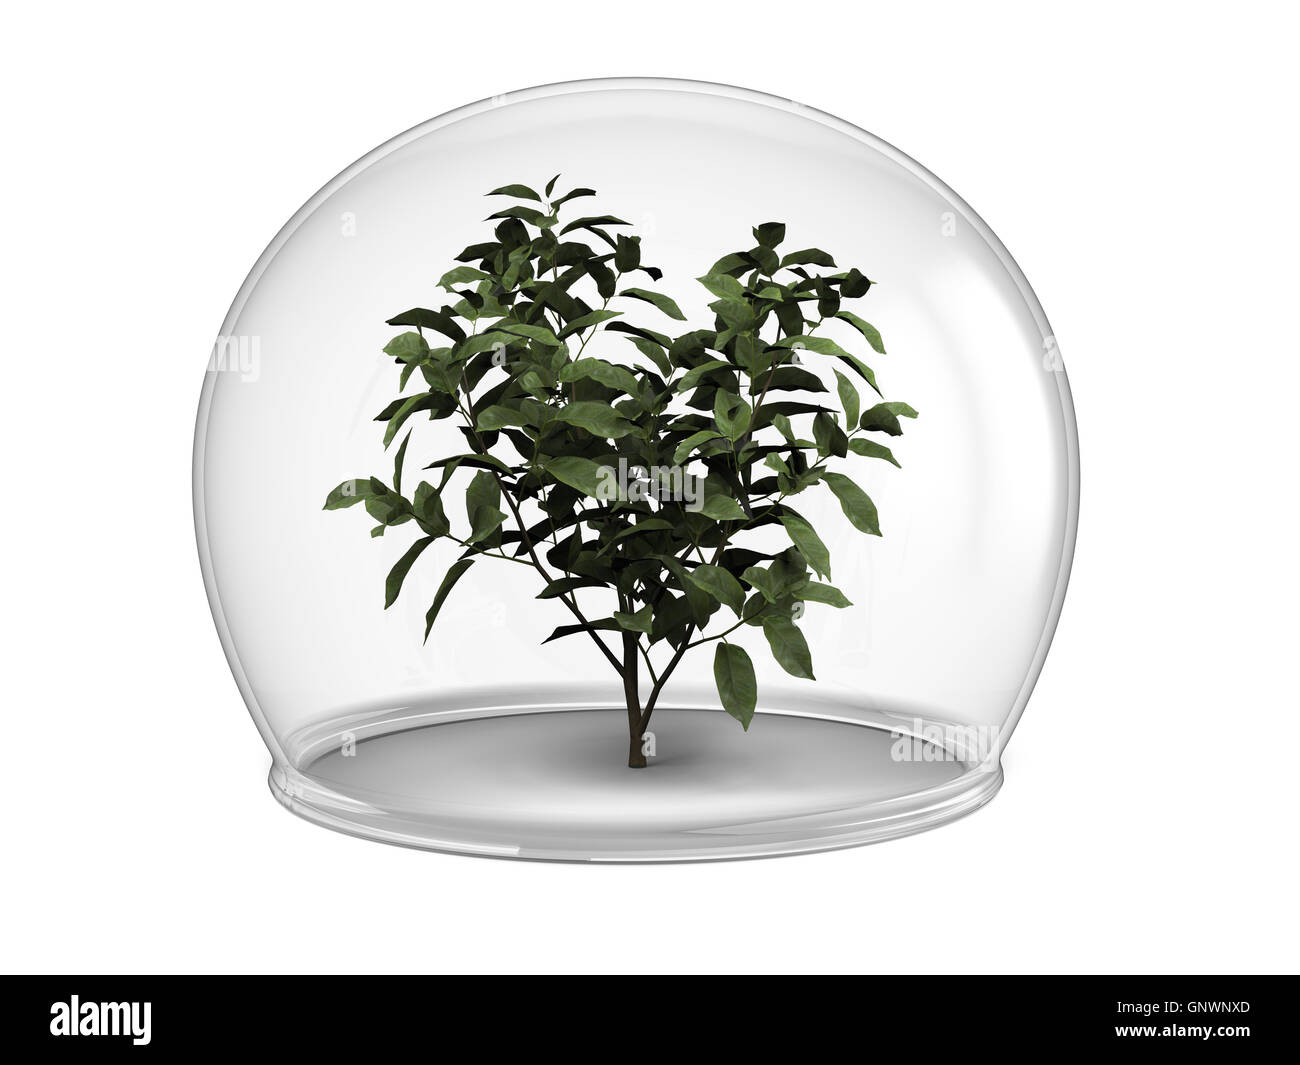 Plant Quarantine Cut Out Stock Images & Pictures - Alamy on plant teeth, plant sickness, plant container sizes, plant clinic, plant room, plant husbandry, plant health certificate, plant cube, plant plague, plant the bomb, plant the eye, plant quotes, plant insect pests, plant isolation,